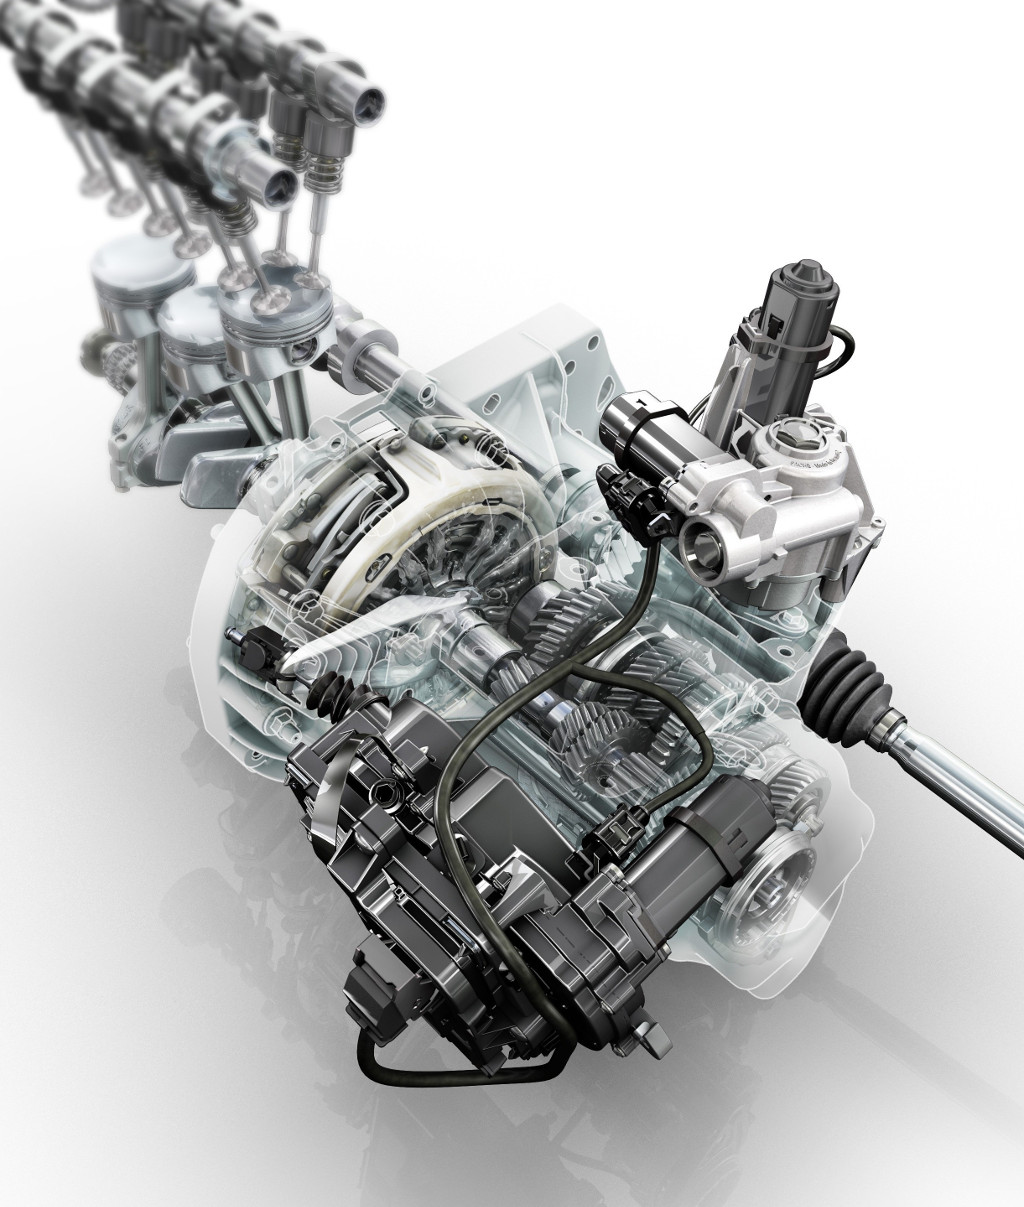 automated manual transmission amt technology